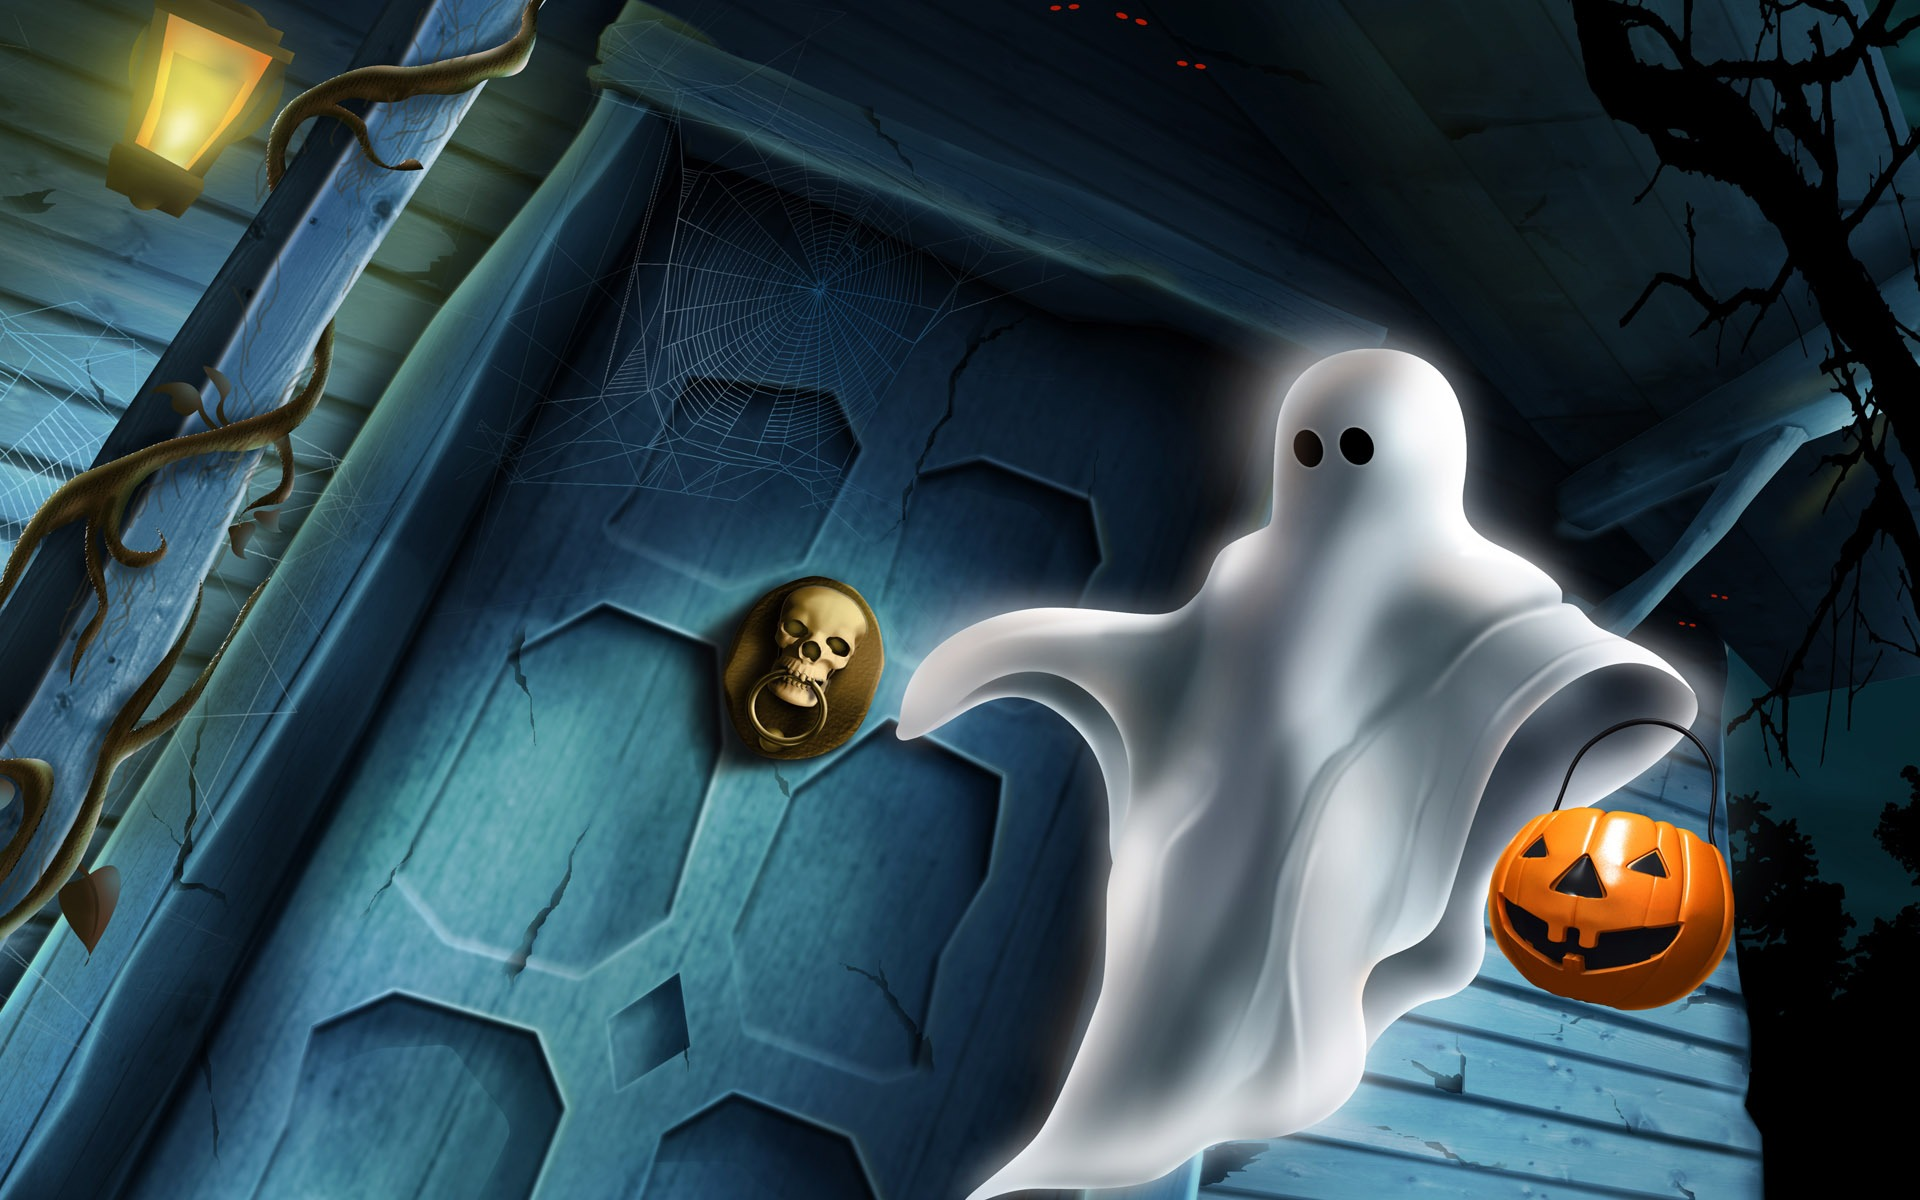 halloween ghost wallpaper halloween holidays wallpapers in jpg